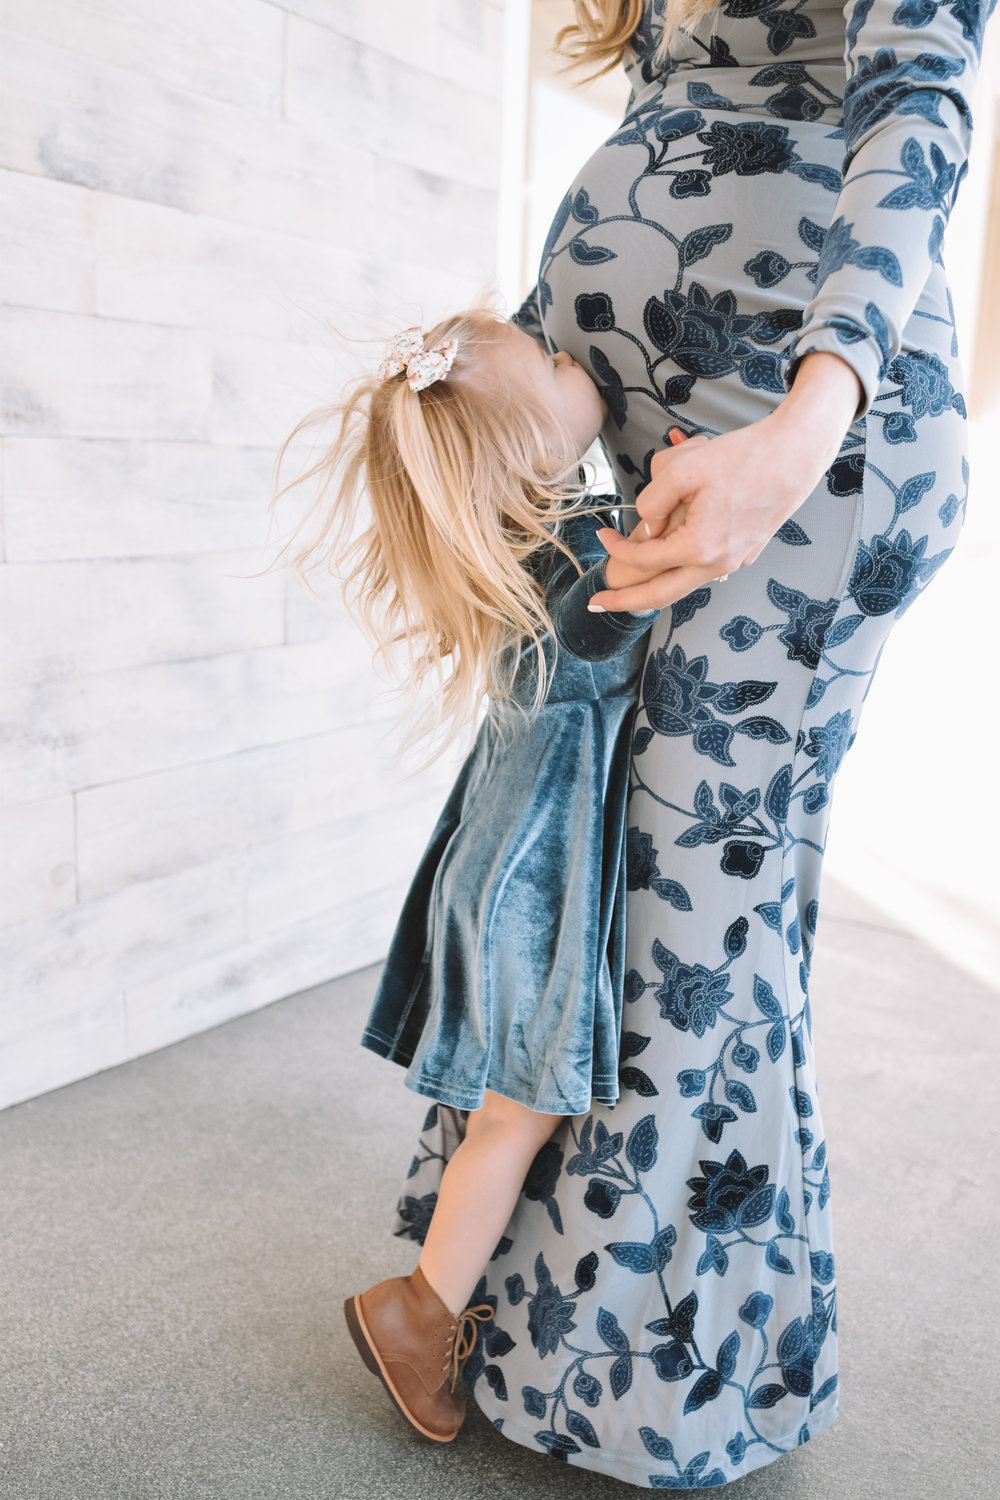 How I'm Parenting Differently with Baby #2 - The Overwhelmed Mommy Blogger